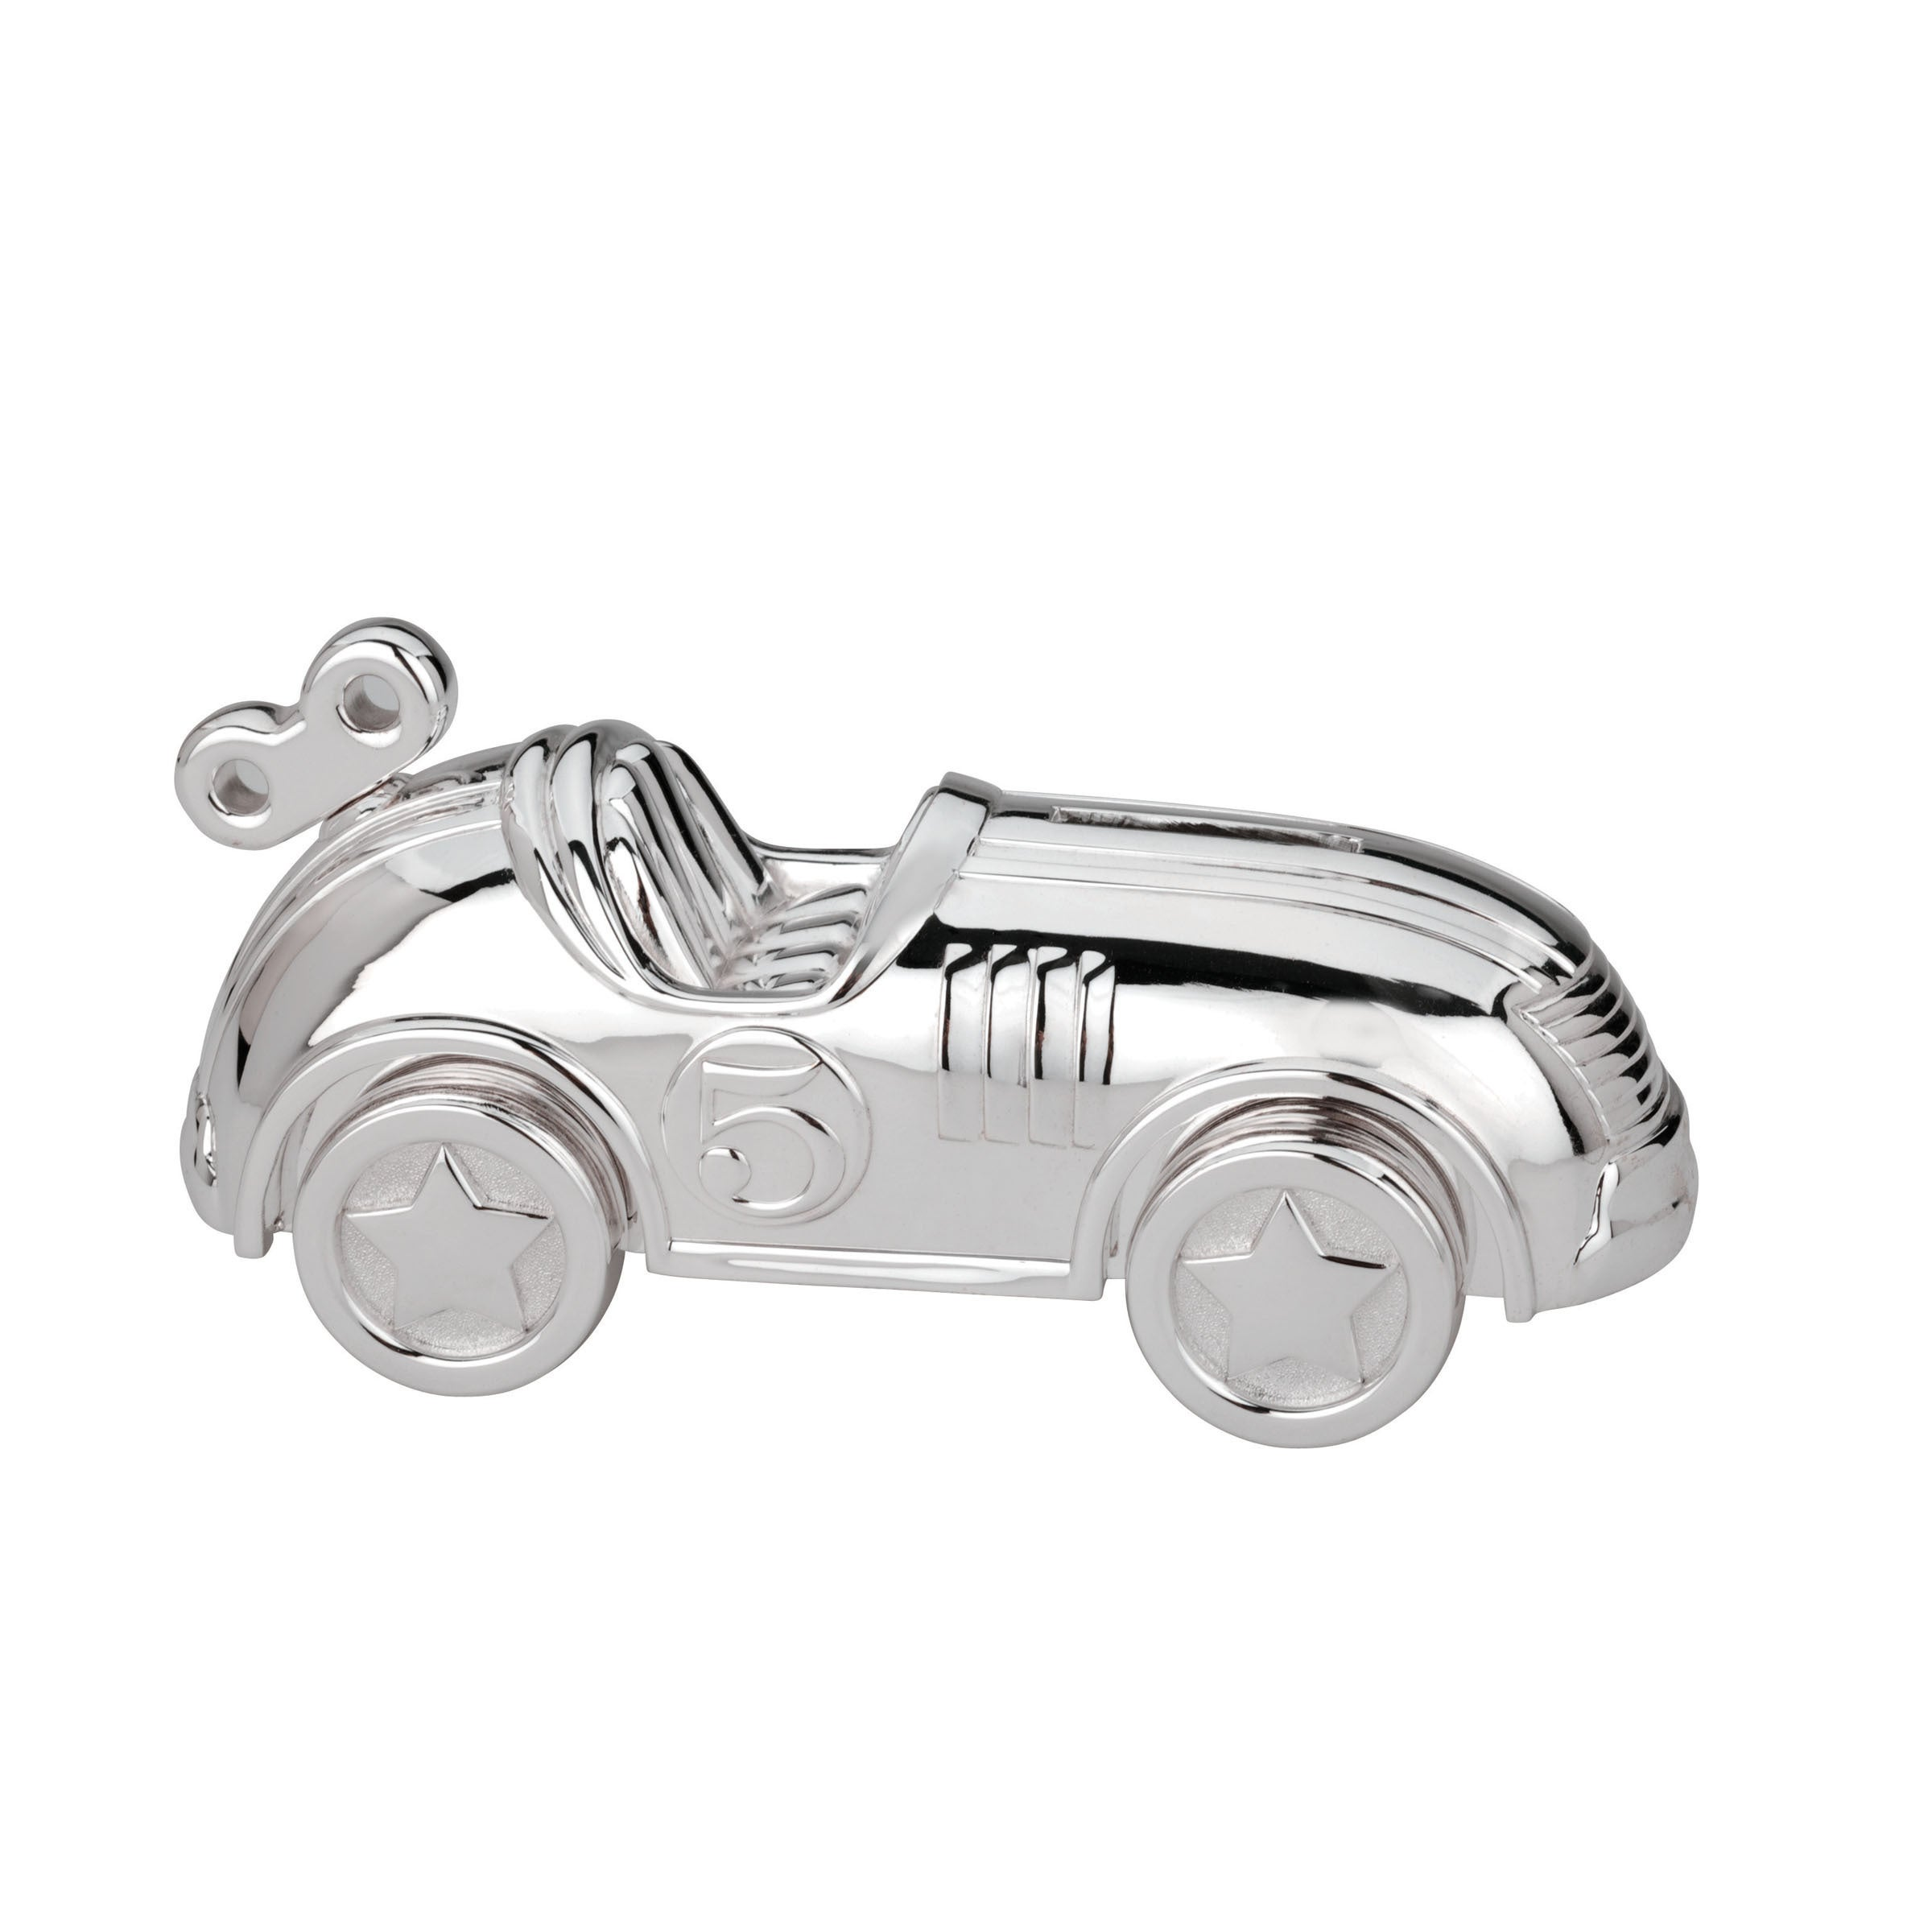 Reed & Barton Silvertone Metal Race Car Bank (Car), Silver